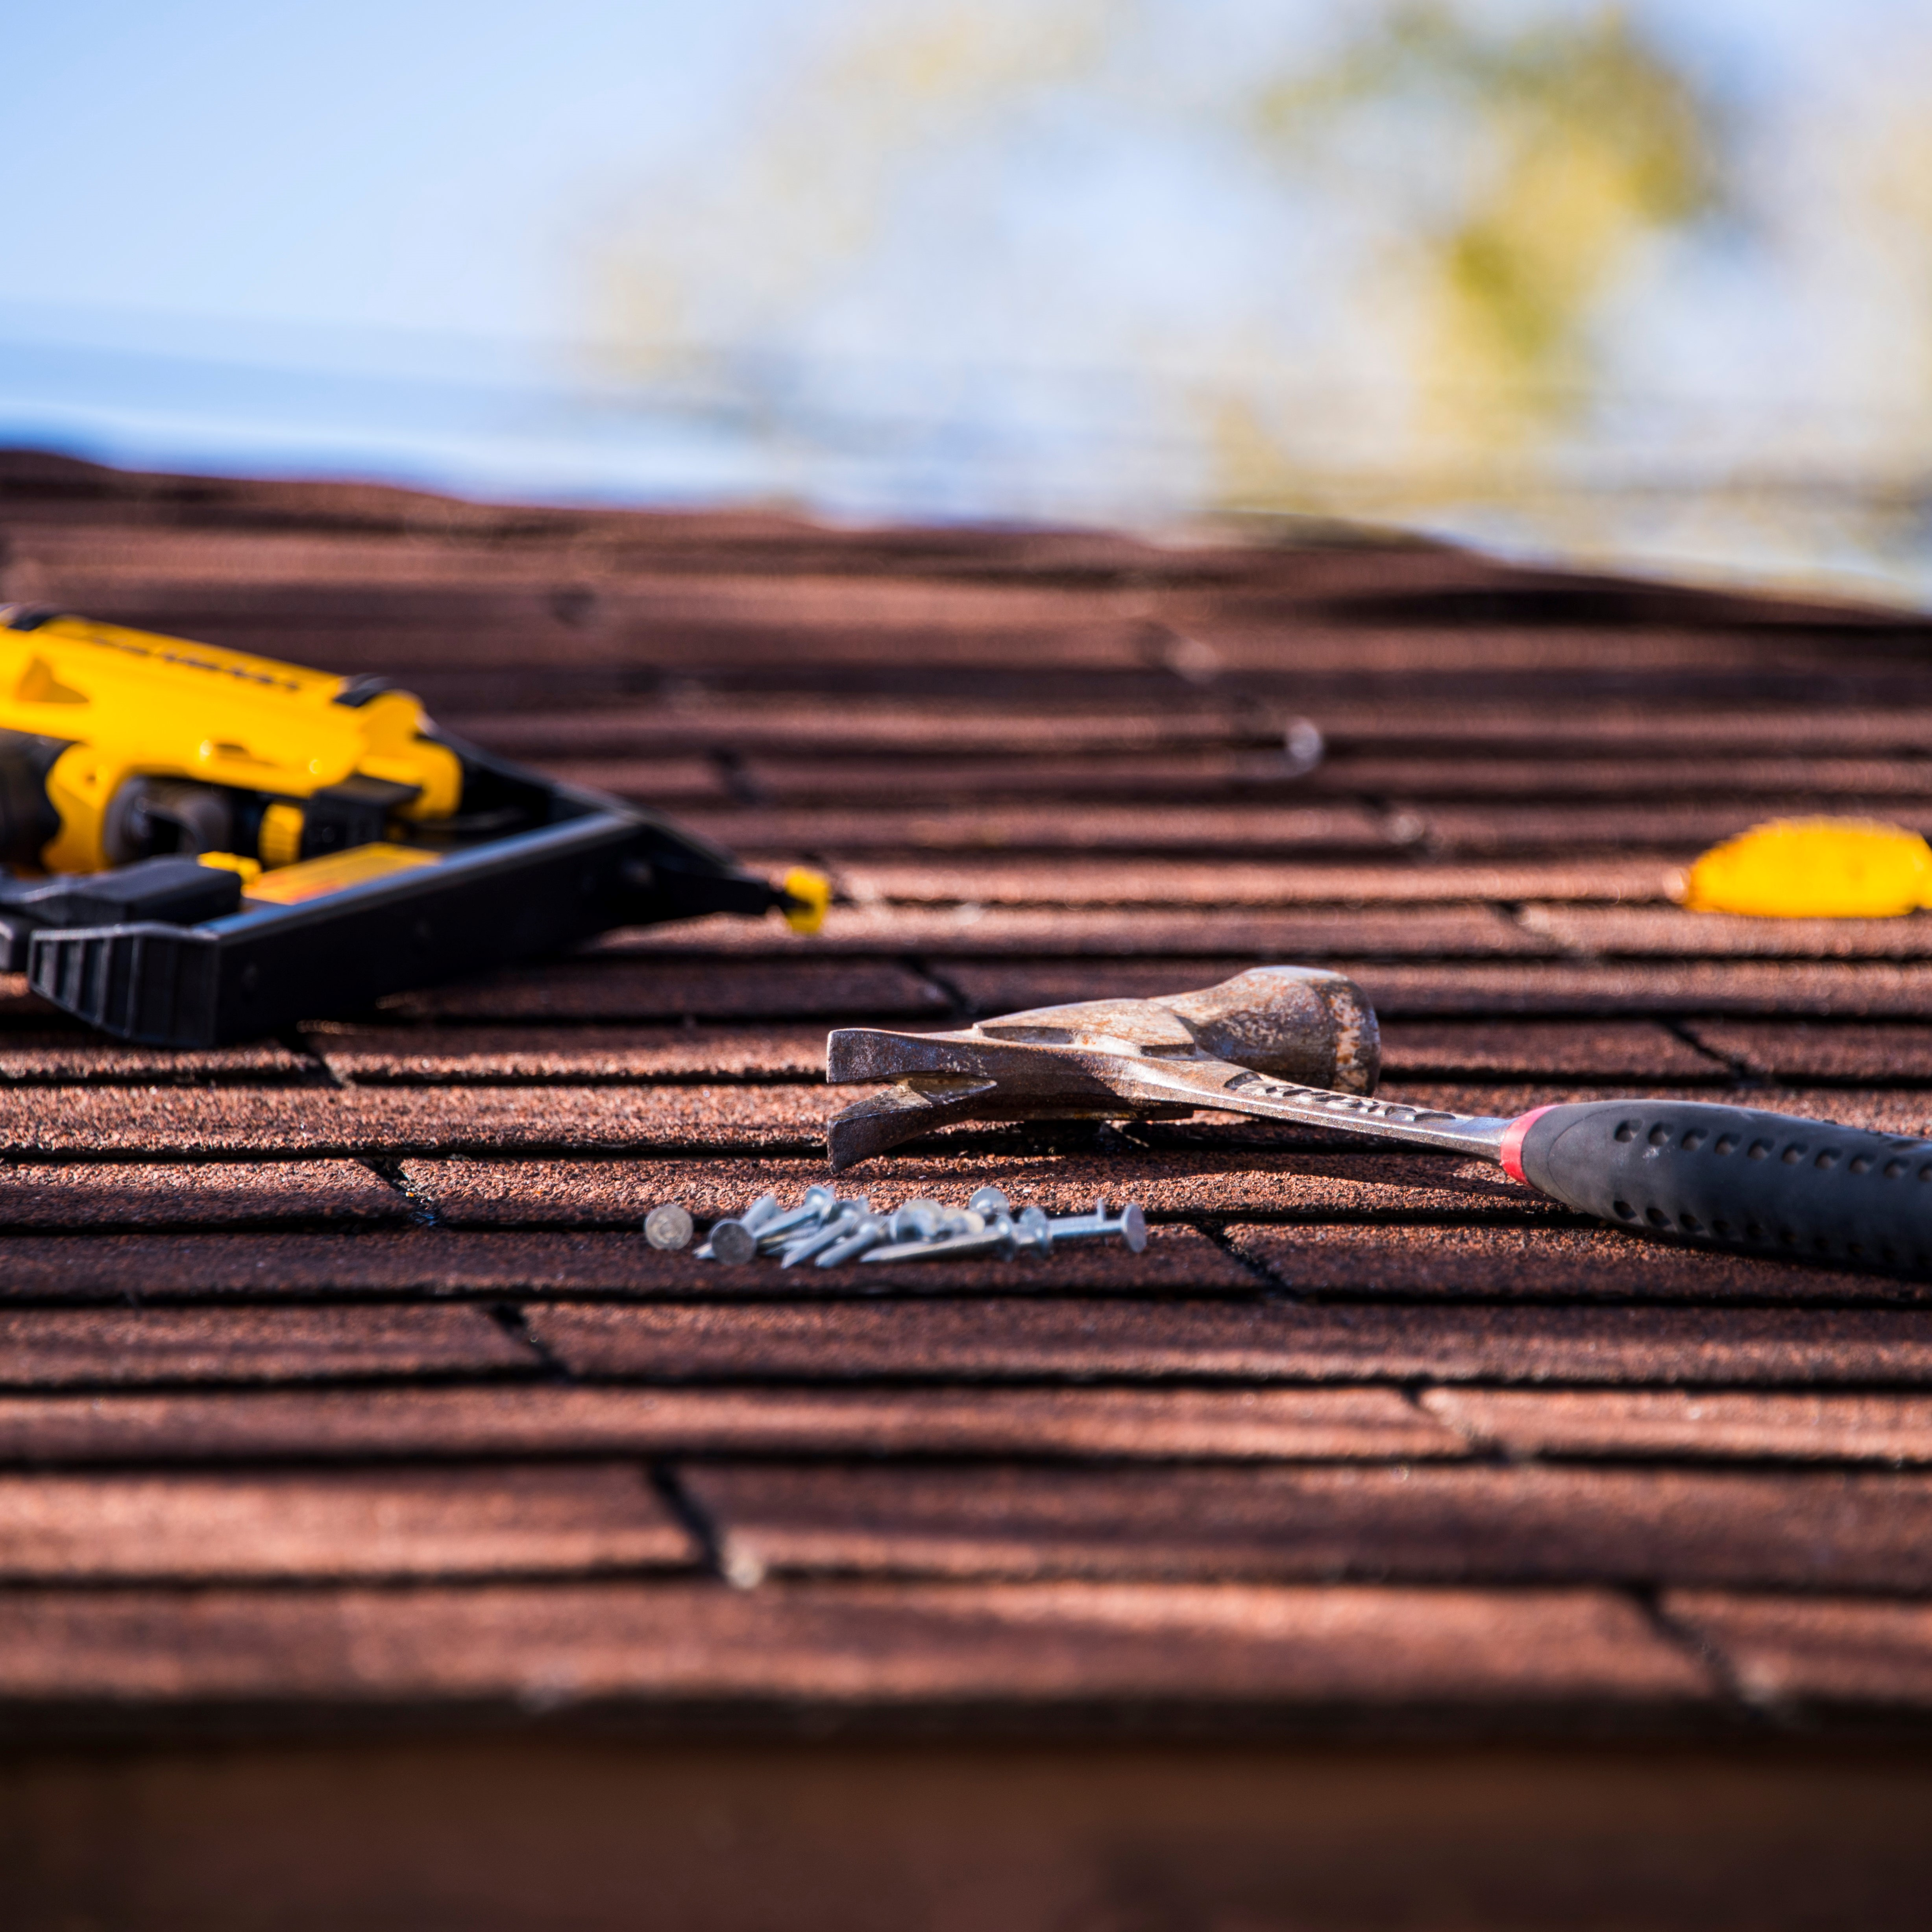 An asphalt roof with tools on it, including a hammer, nail gun, and nails.